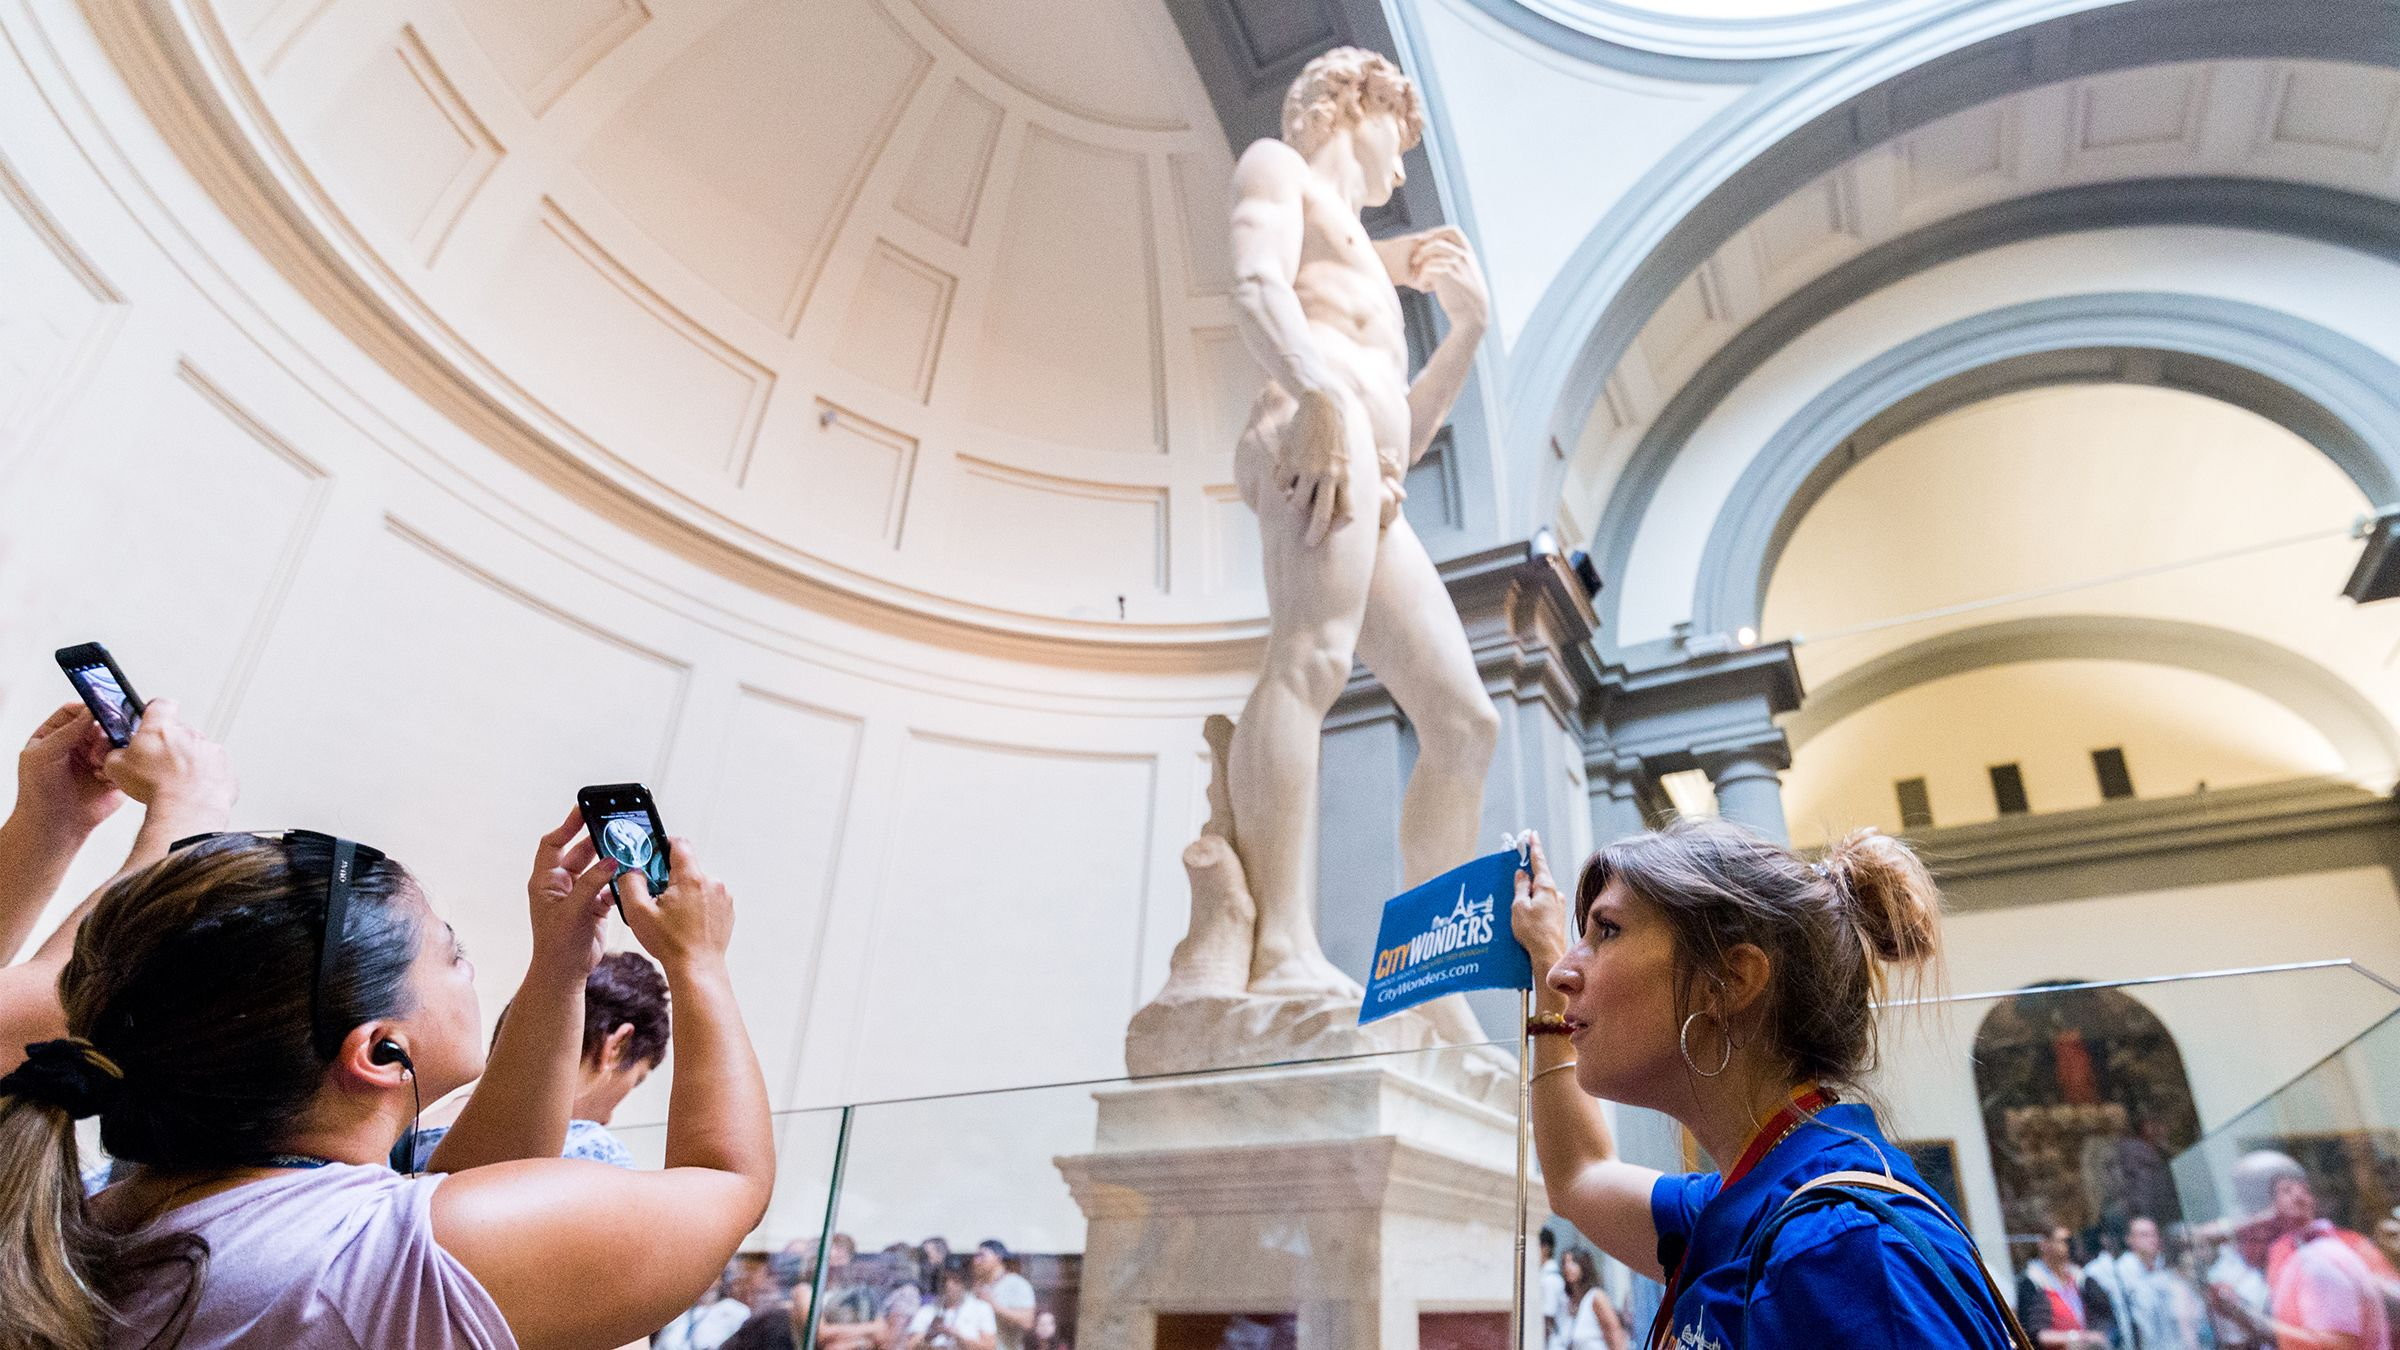 Florence in 1 Day: ComboSaver Tour with David, Uffizi & More